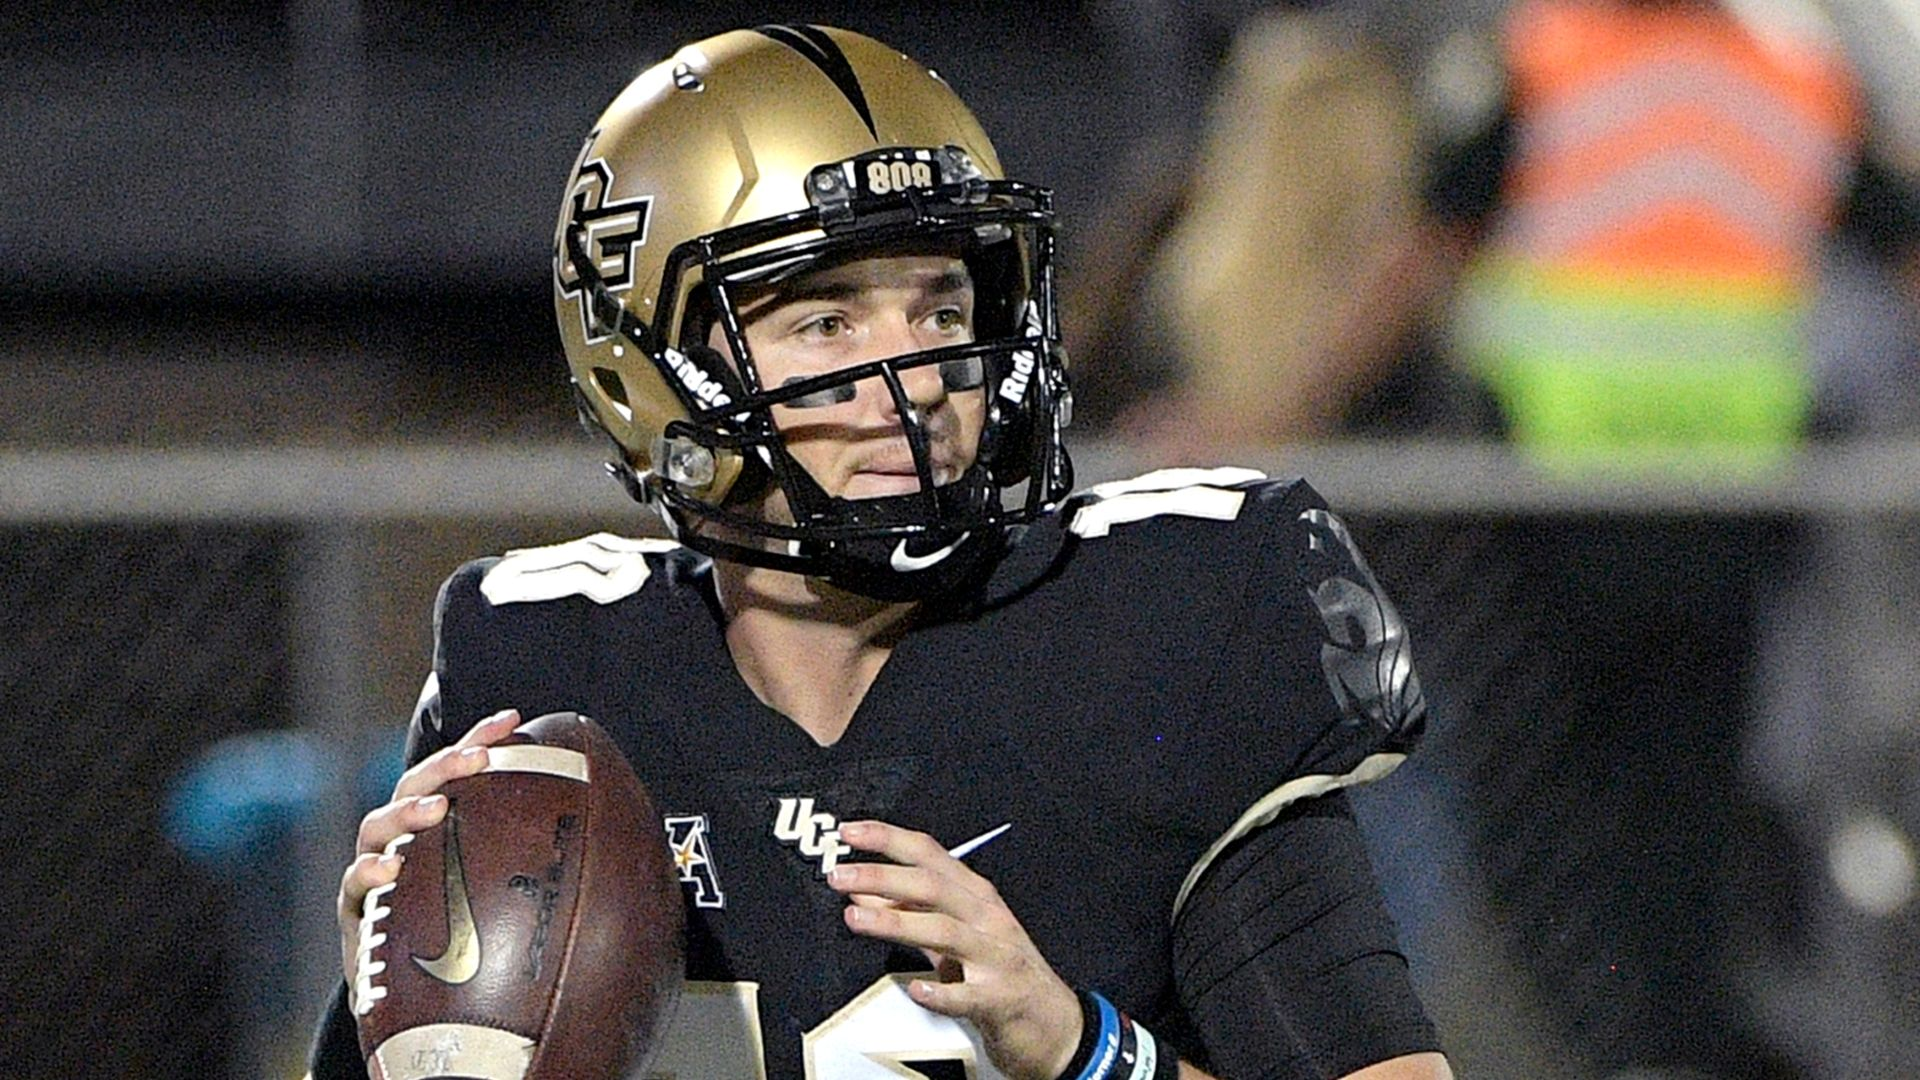 Milton leads UCF past Cincinnati, clinches AAC East